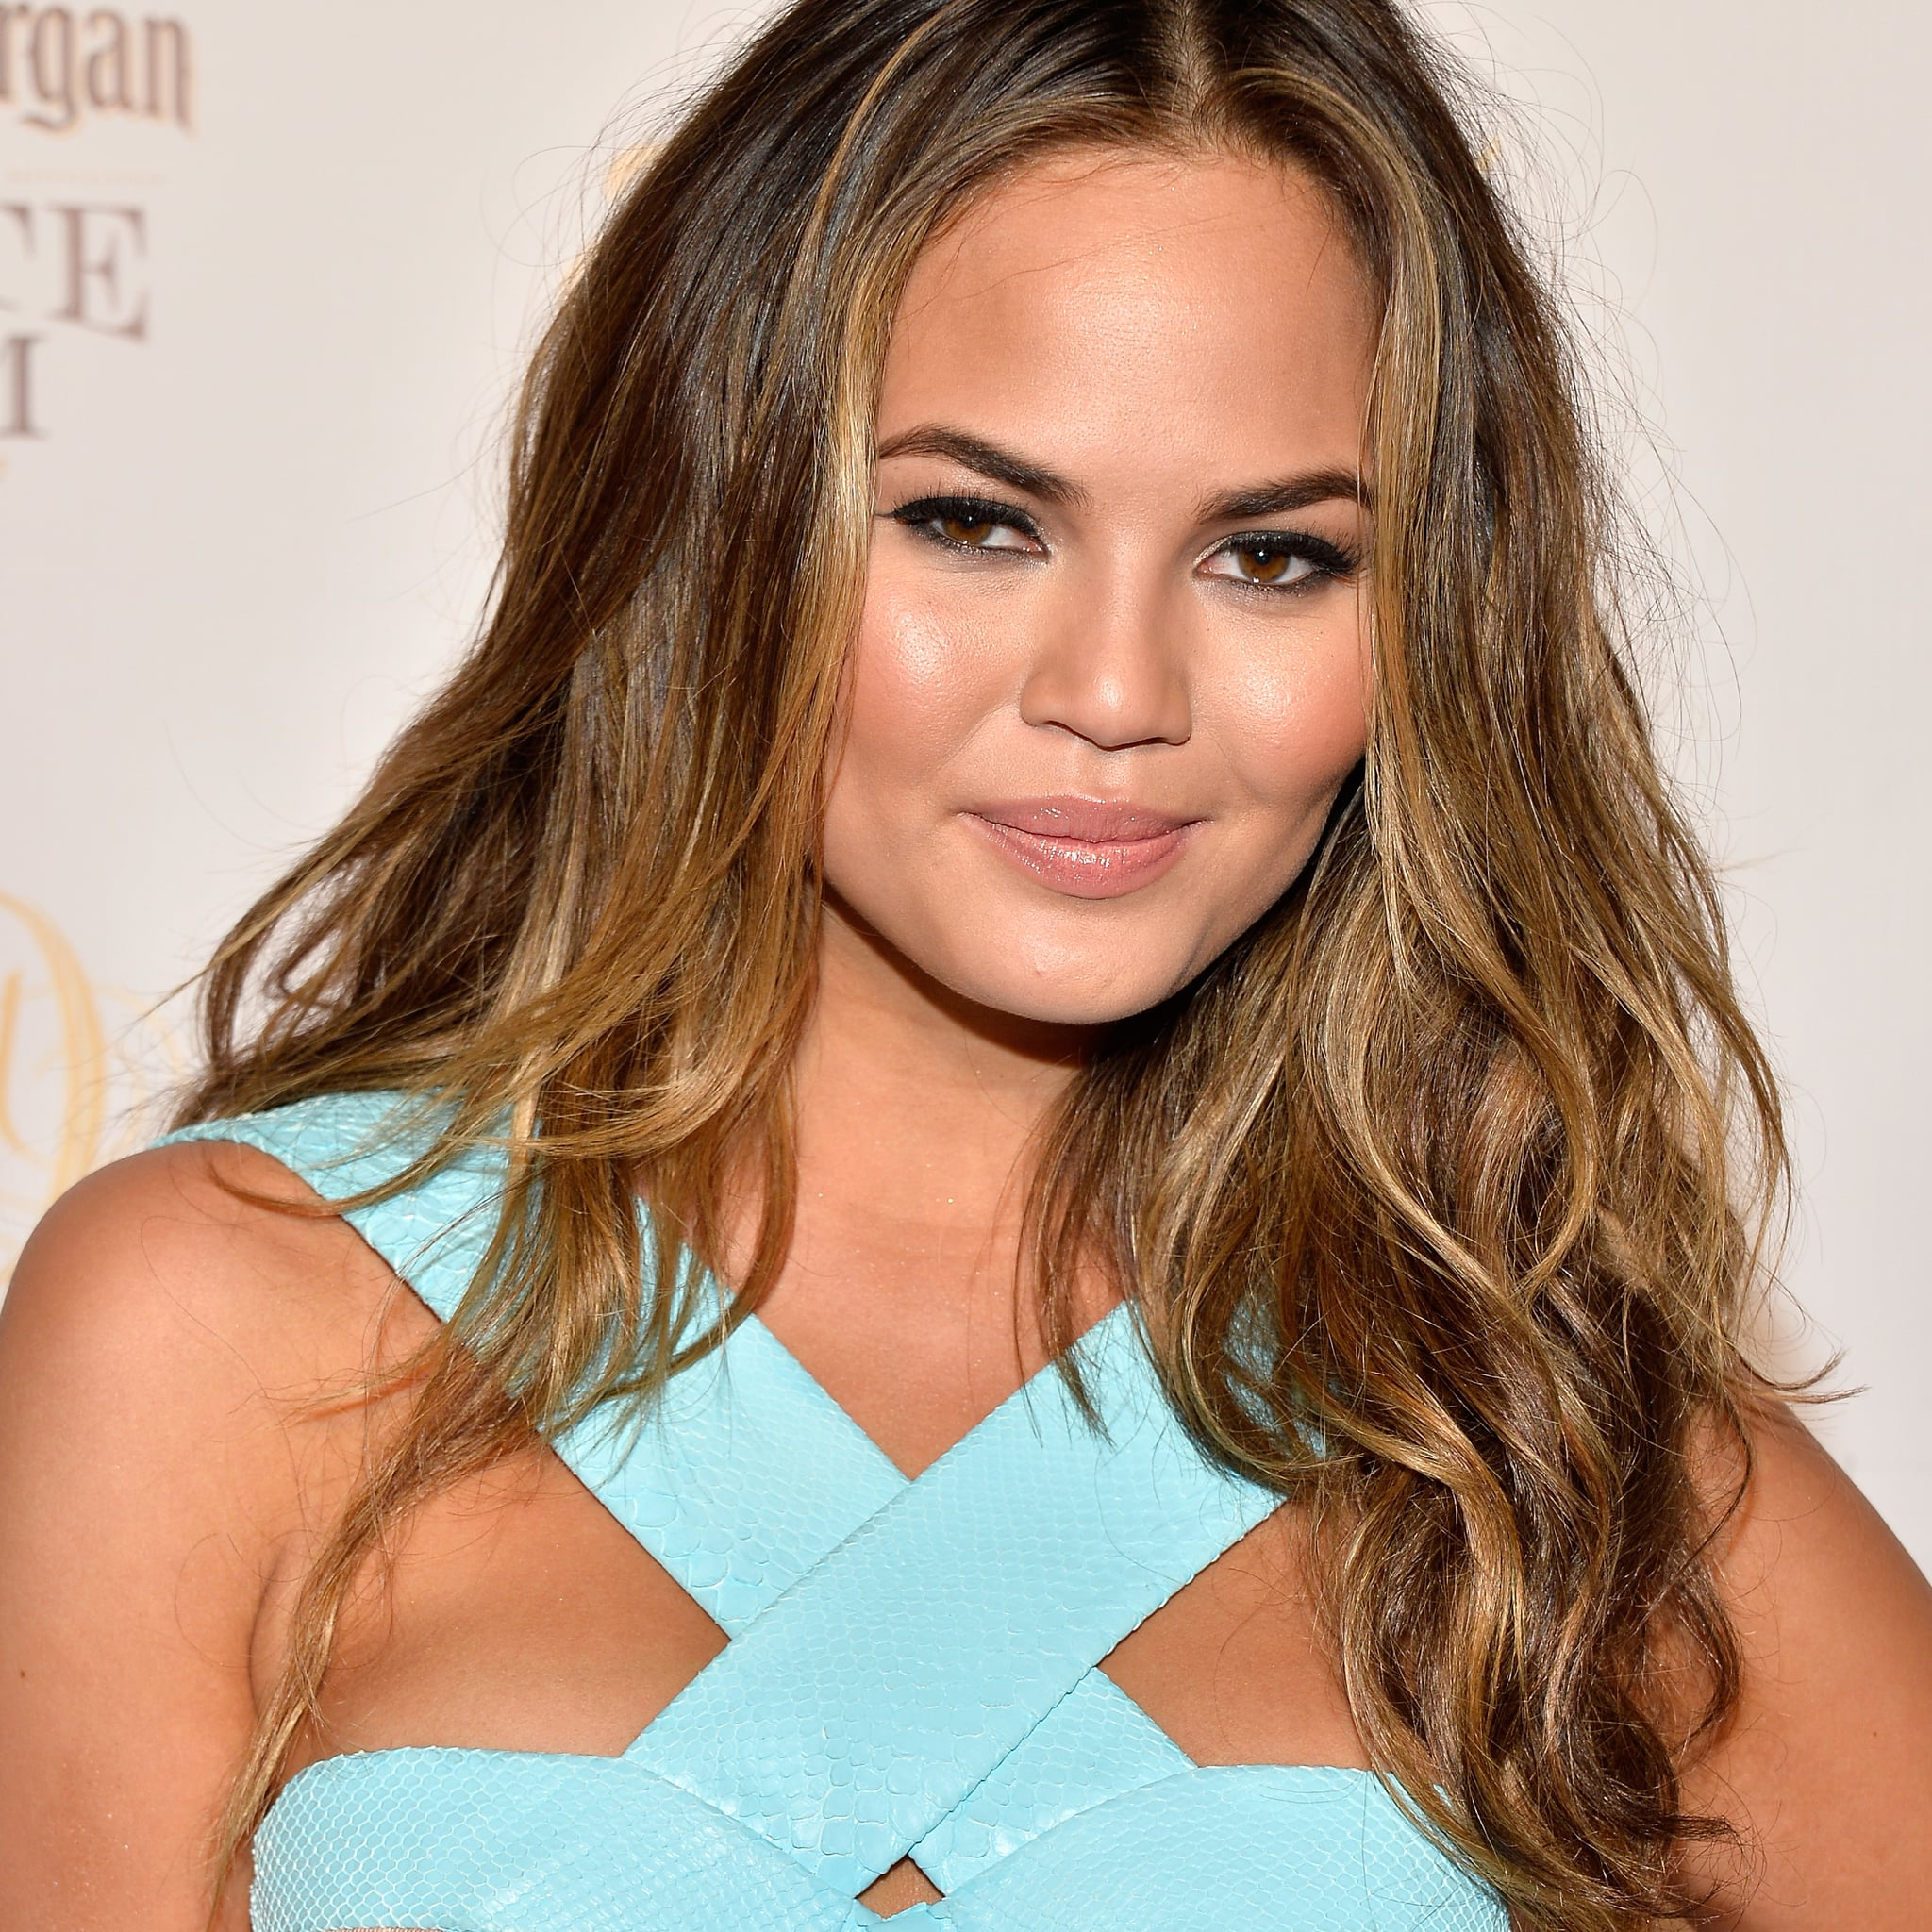 Celebrities With Balayage Hair Colour | Pictures | POPSUGAR Beauty UK